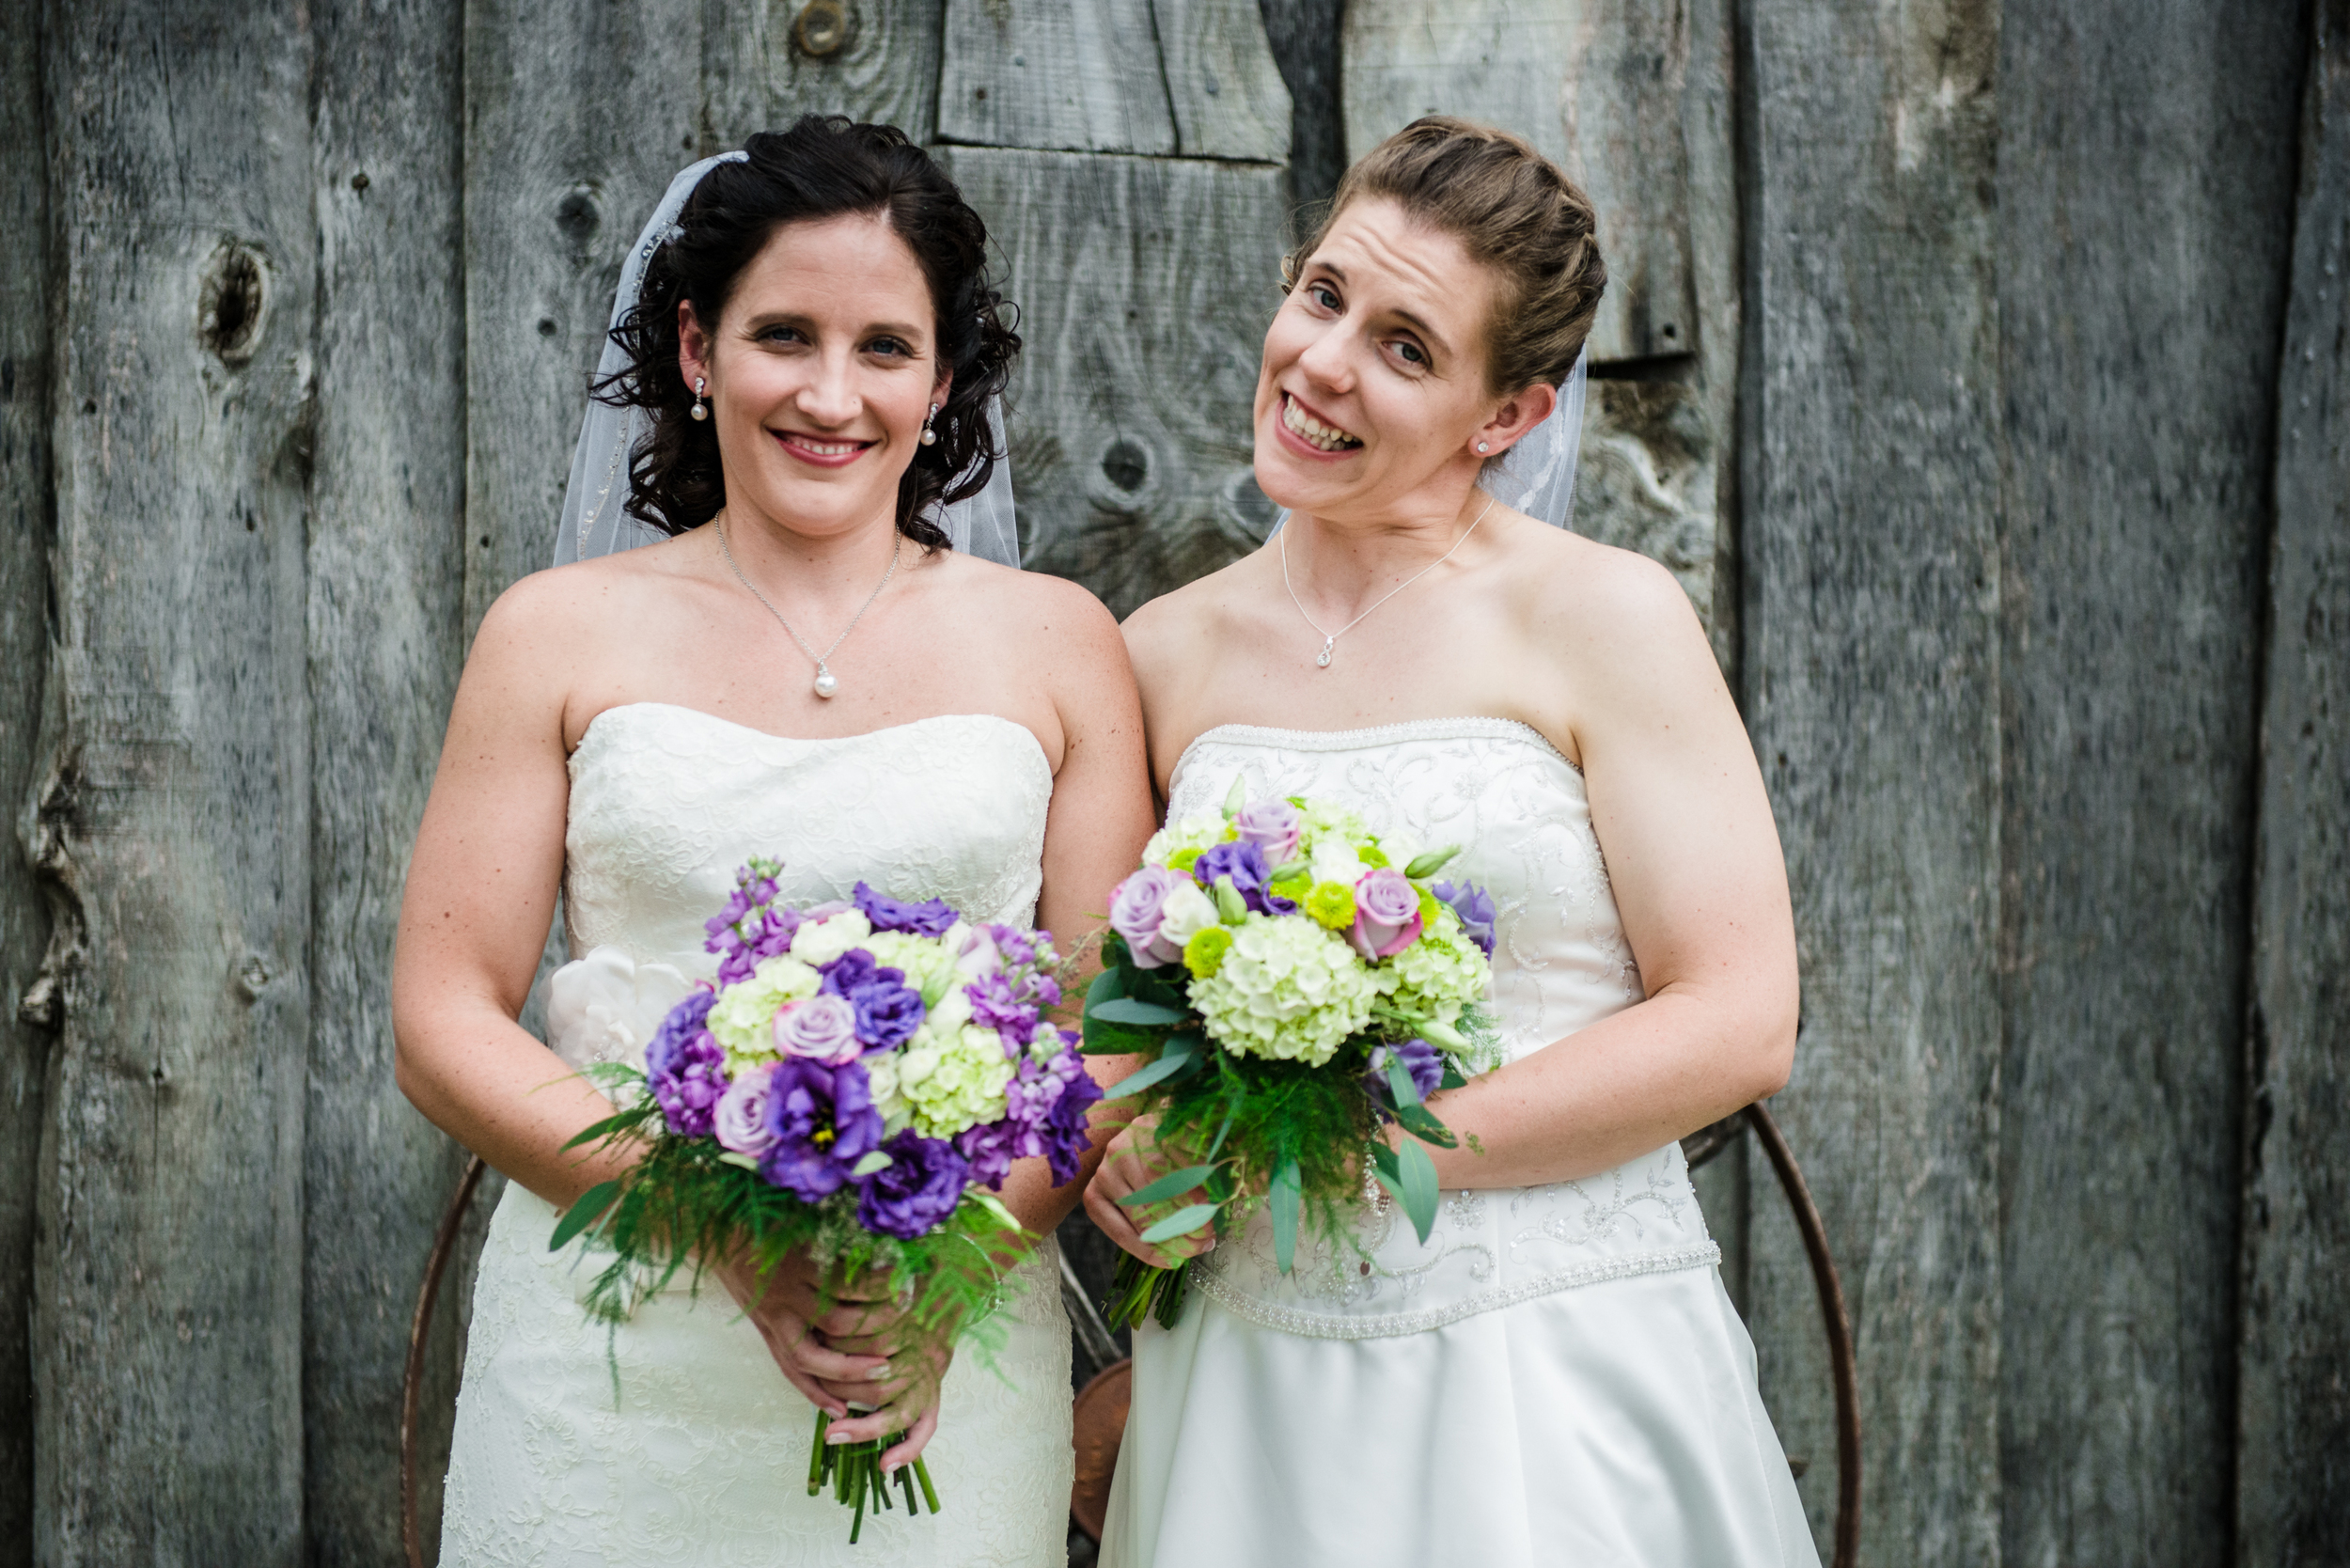 Minnesota LGBT Wedding Photography - Megan and Trista - RKH Images - Portraits (65 of 490).jpg